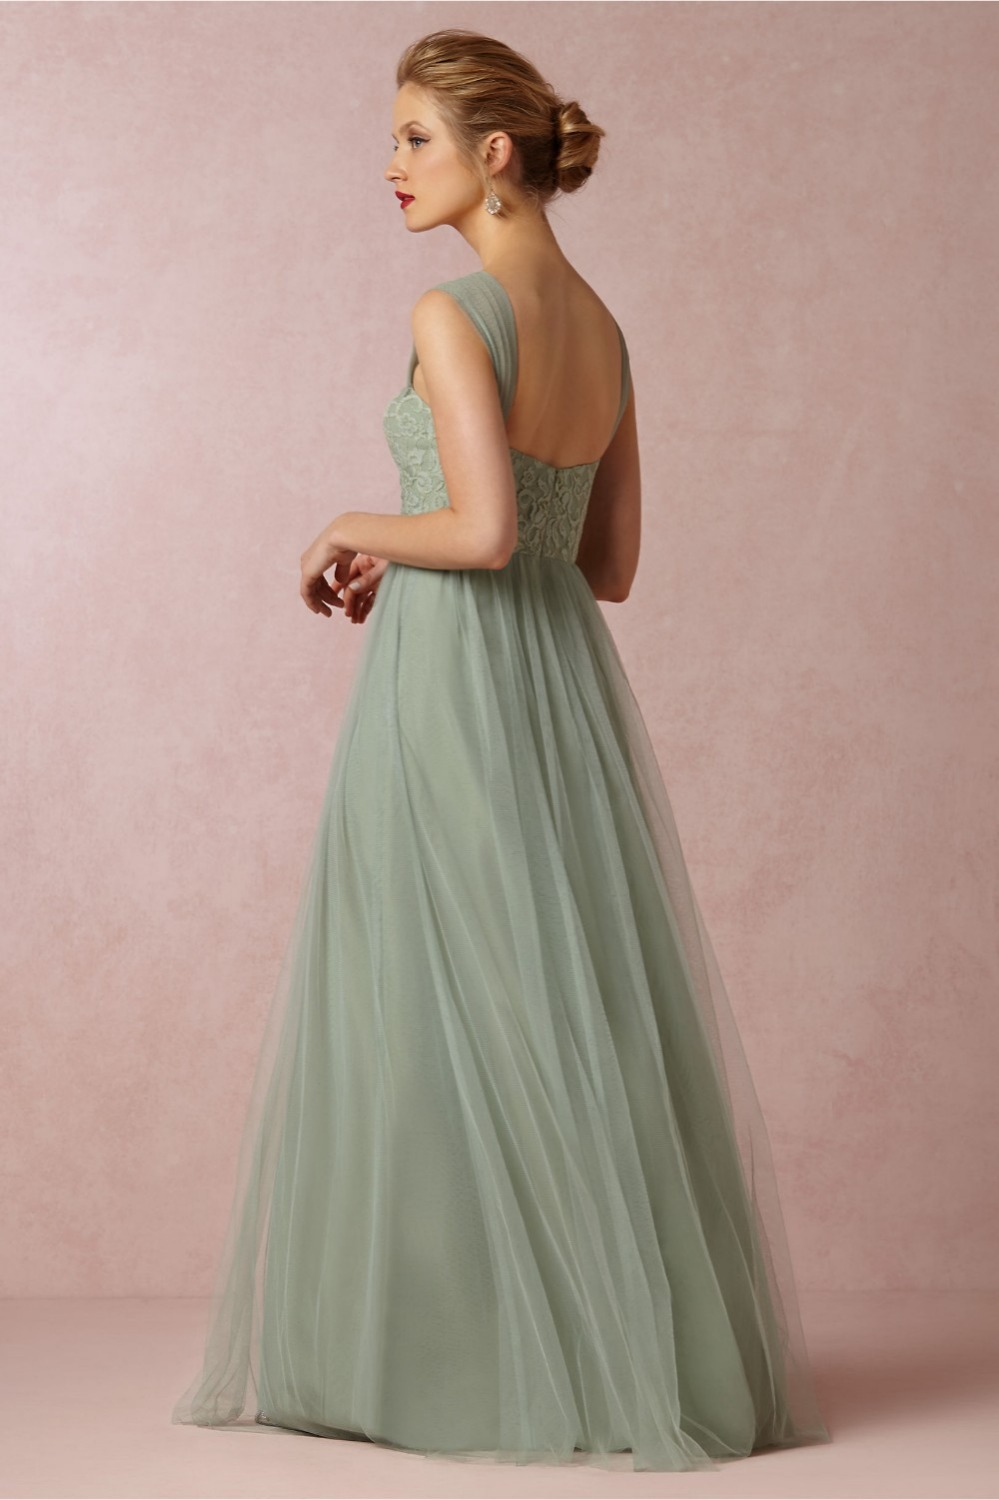 Vintage bridesmaid dresses lace and tulle long mint green vintage bridesmaid dresses lace and tulle long mint green bridesmaid dress two styles vestidos wedding party dress 2016 in bridesmaid dresses from weddings ombrellifo Image collections